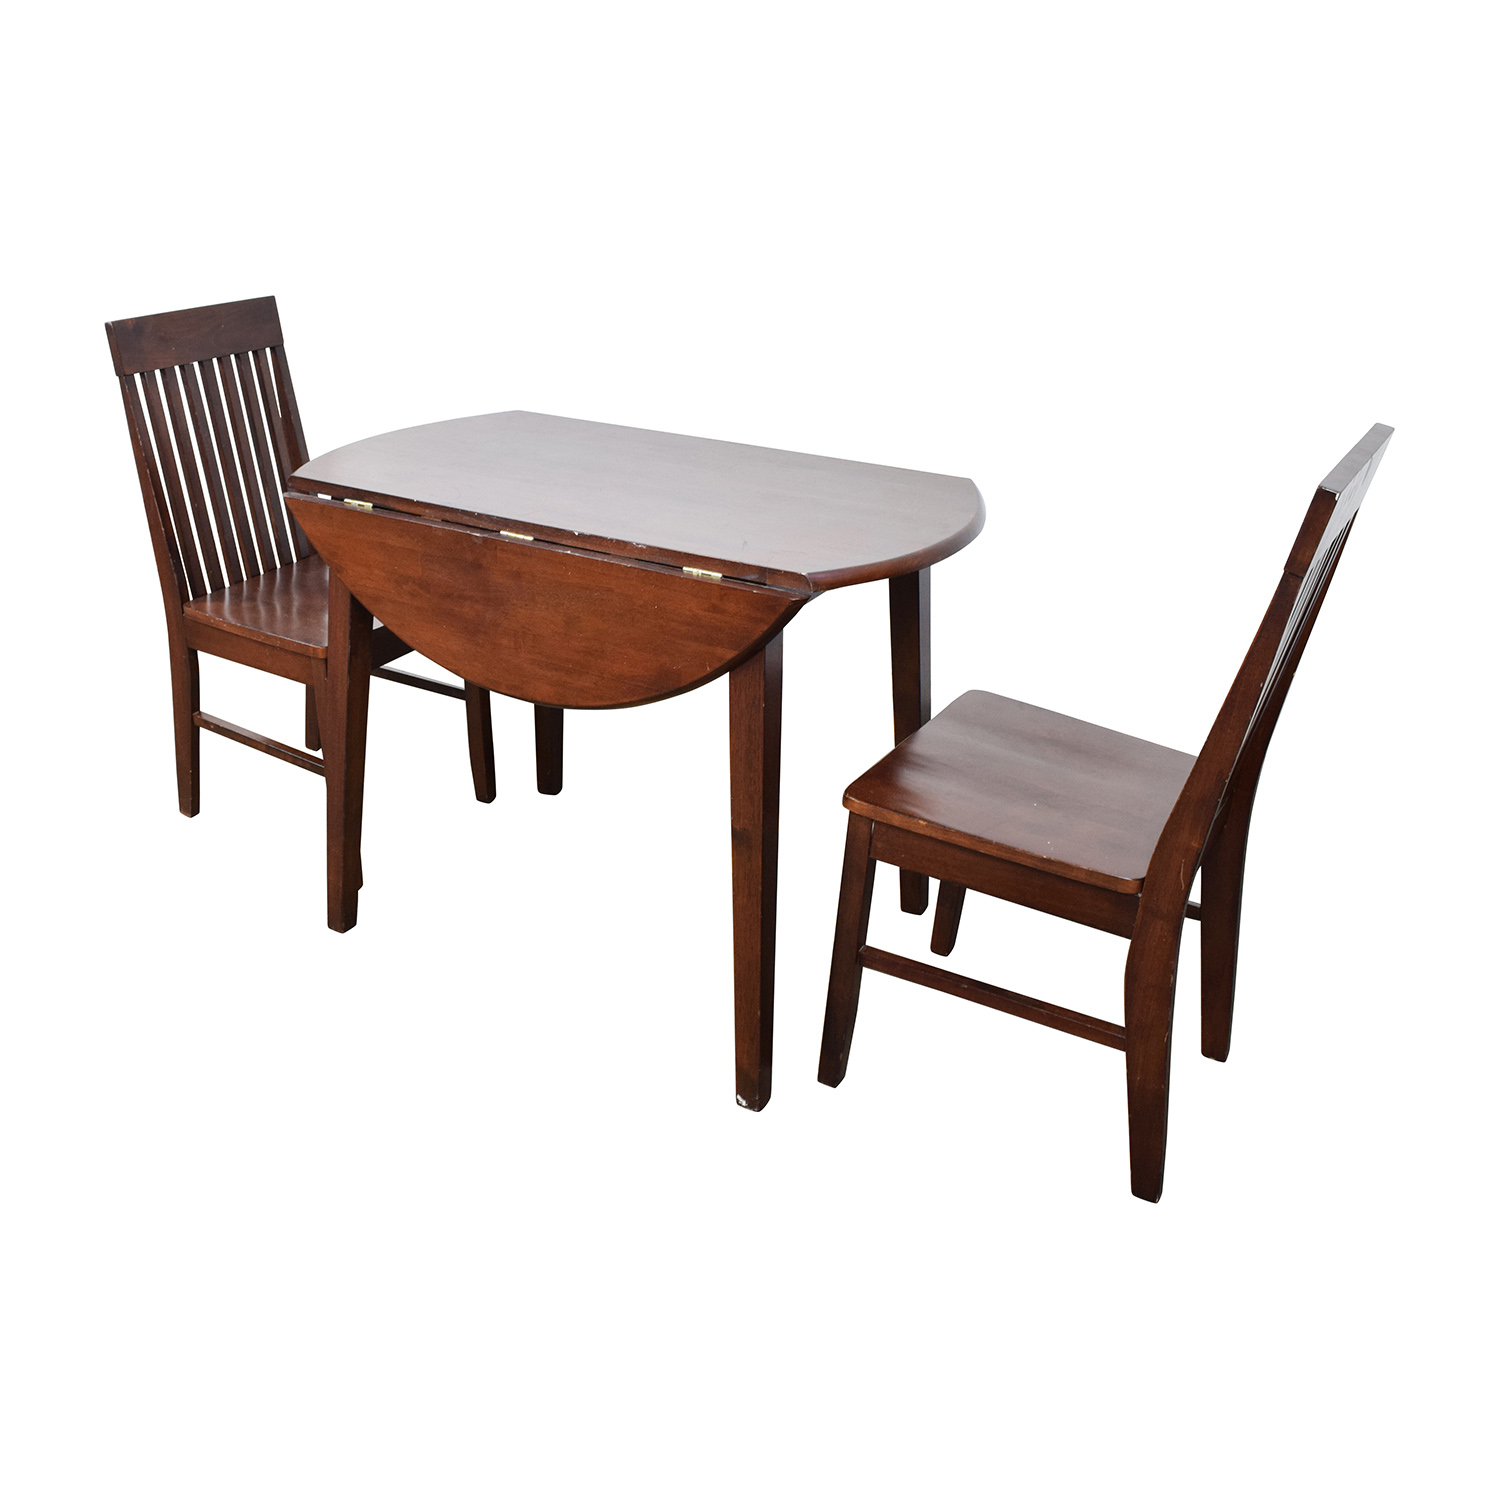 Round Dining Table And Chairs 60 Off Round Dining Table With Folding Sides And Chairs